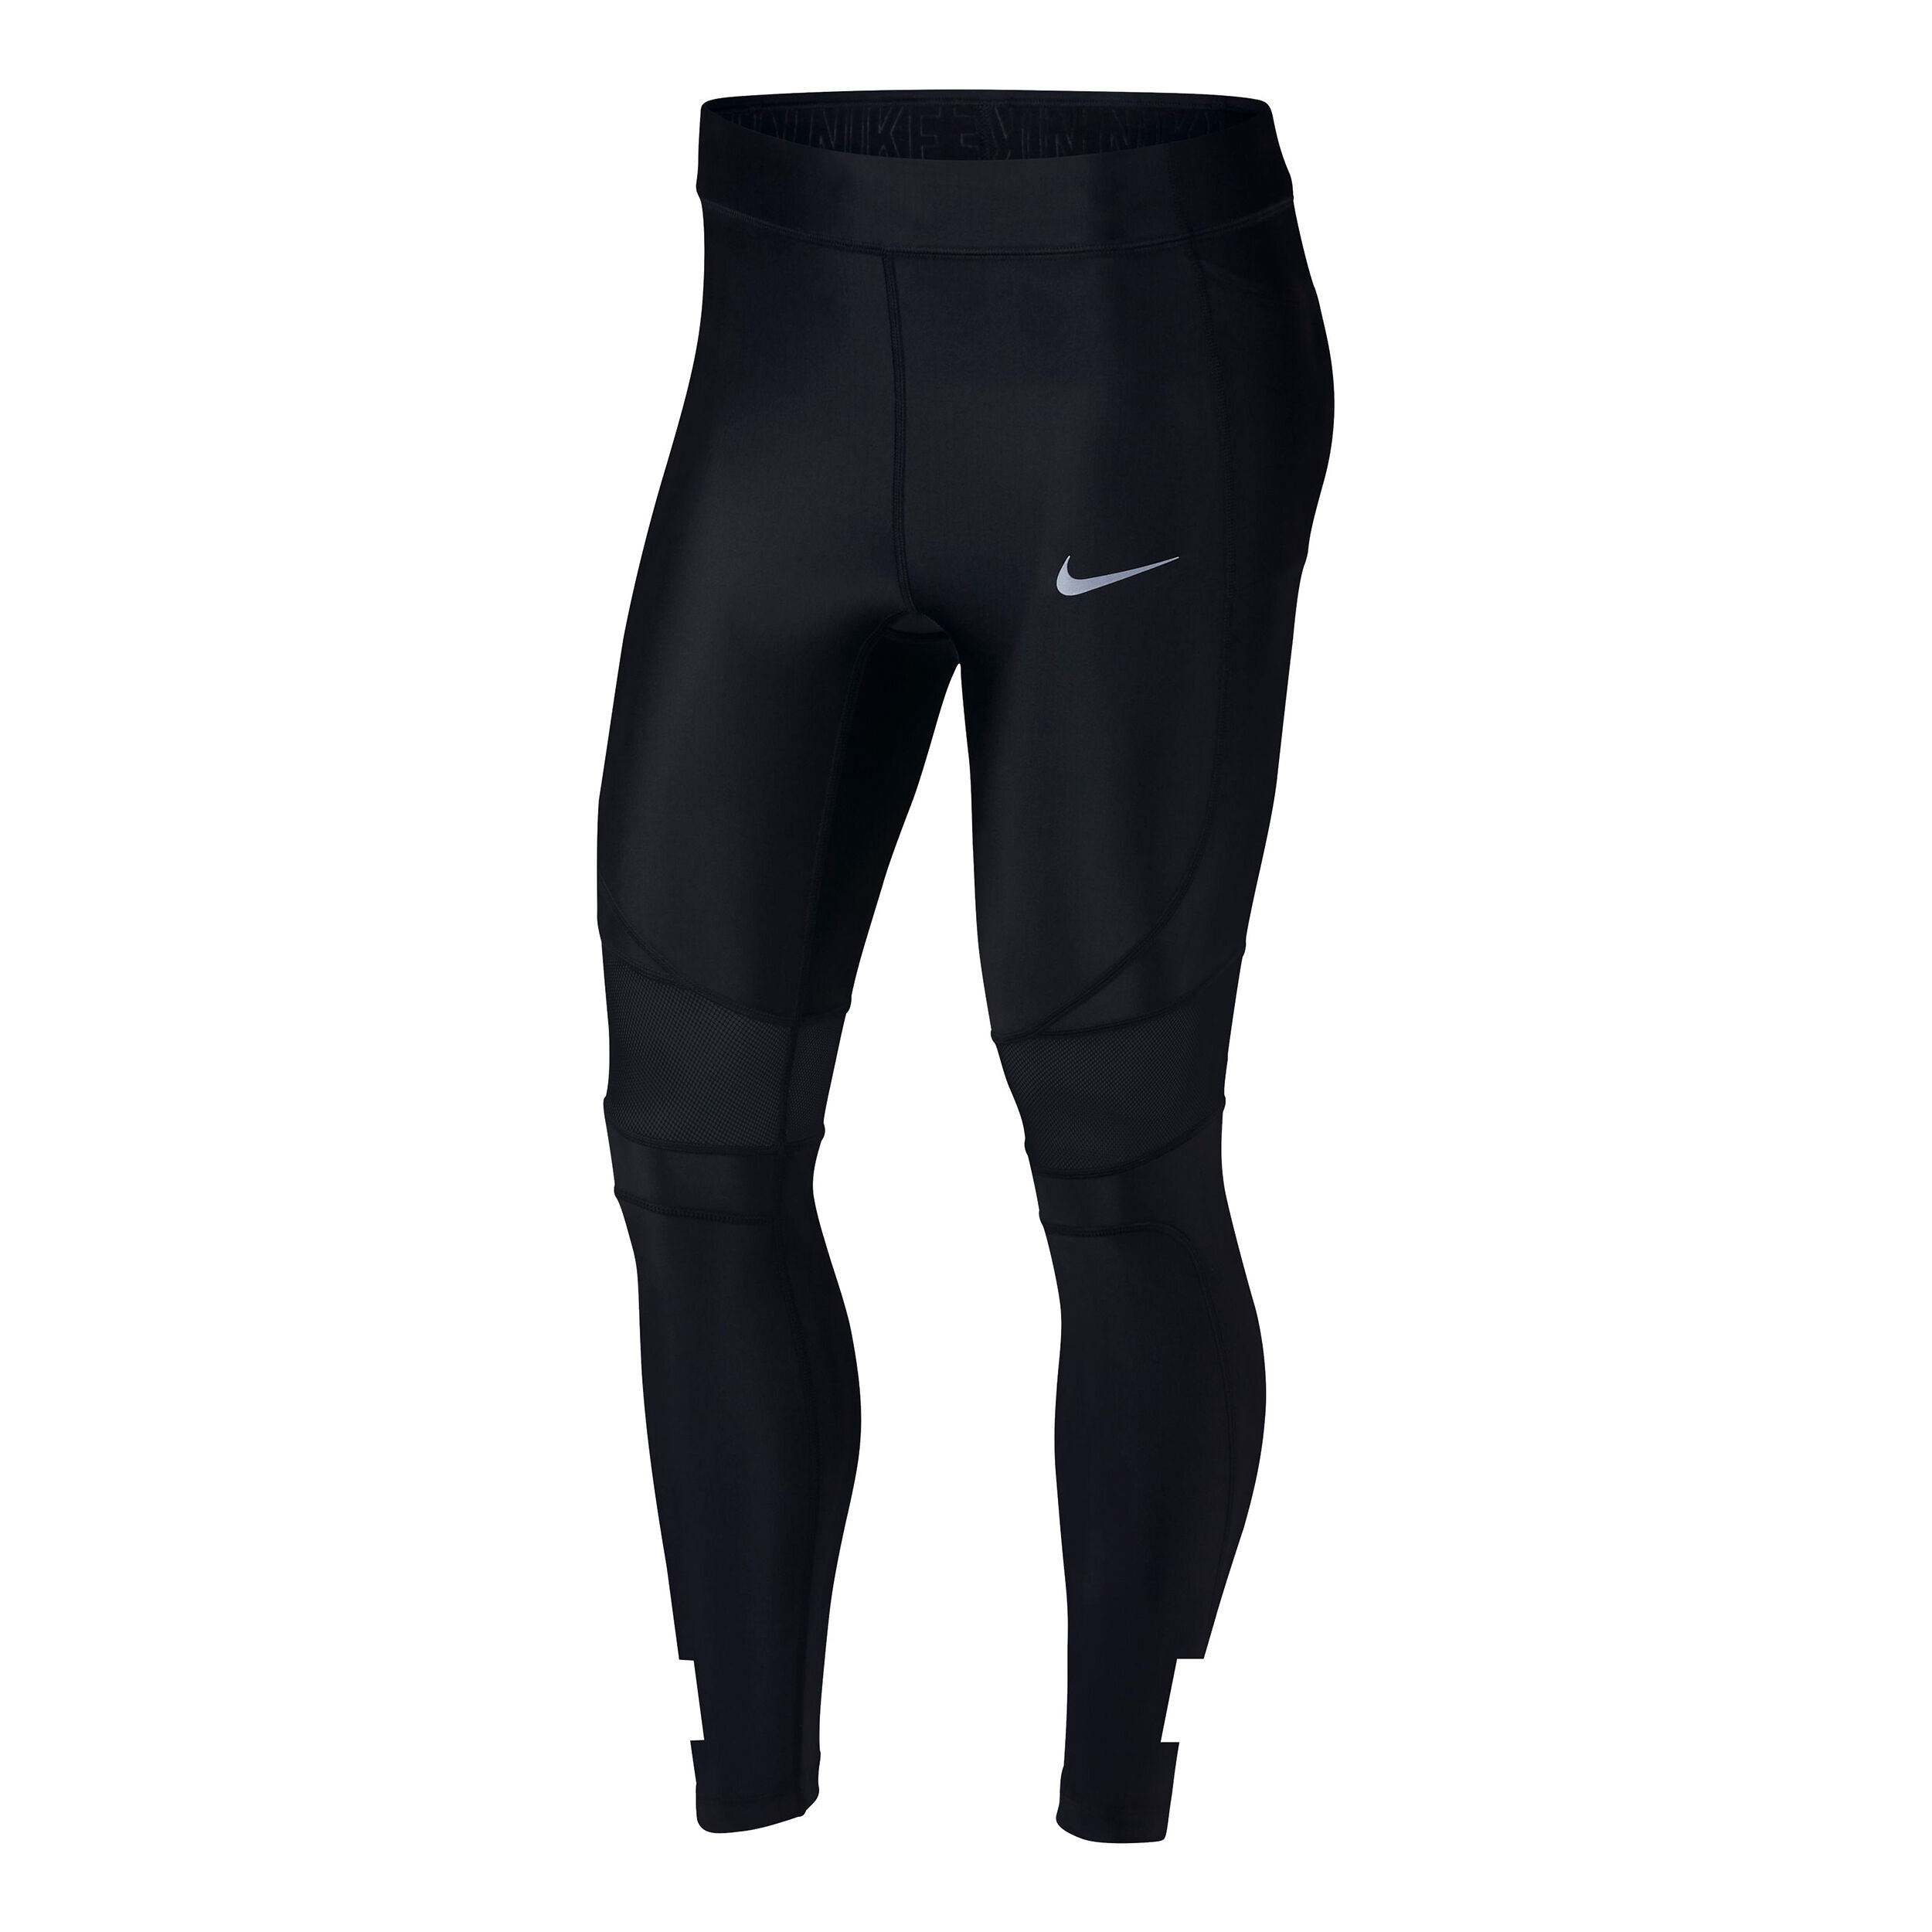 Black Activewear Bottoms Women's Clothing Competent Under Armour Heatgear Grapic Womens Long Training Tights